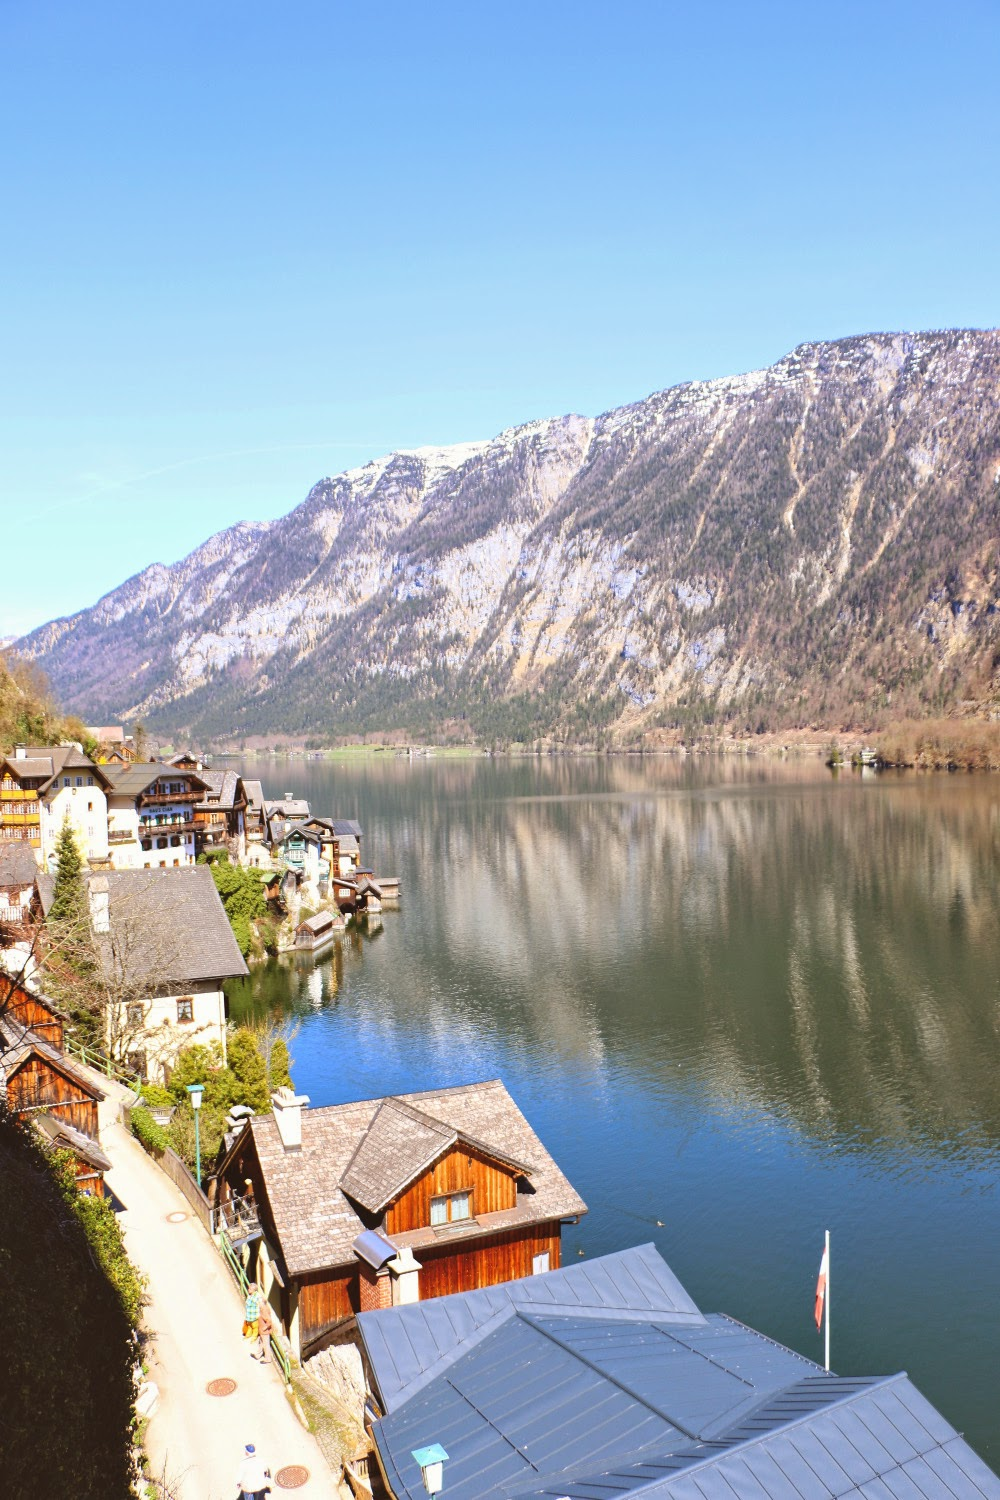 The Charming Town of Hallstatt, Austria